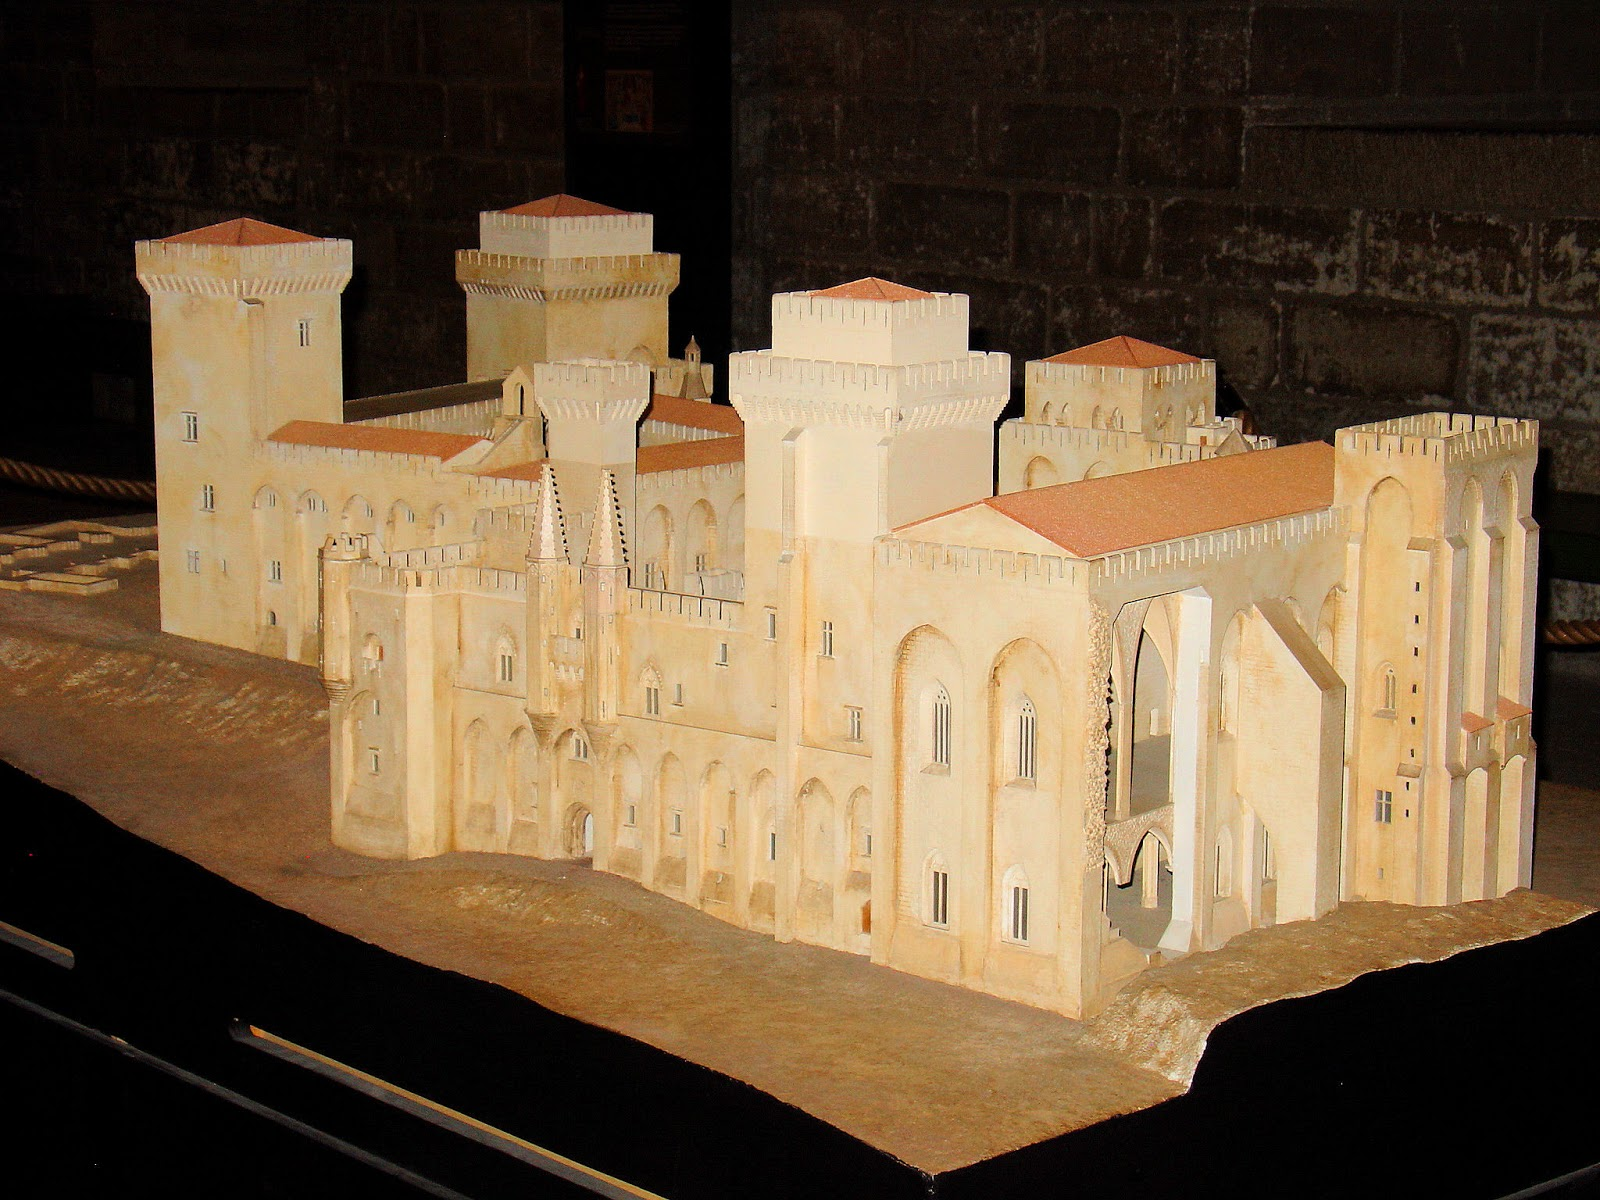 Scale model of the Palais des Papes, Palace of the Popes, in Avignon.